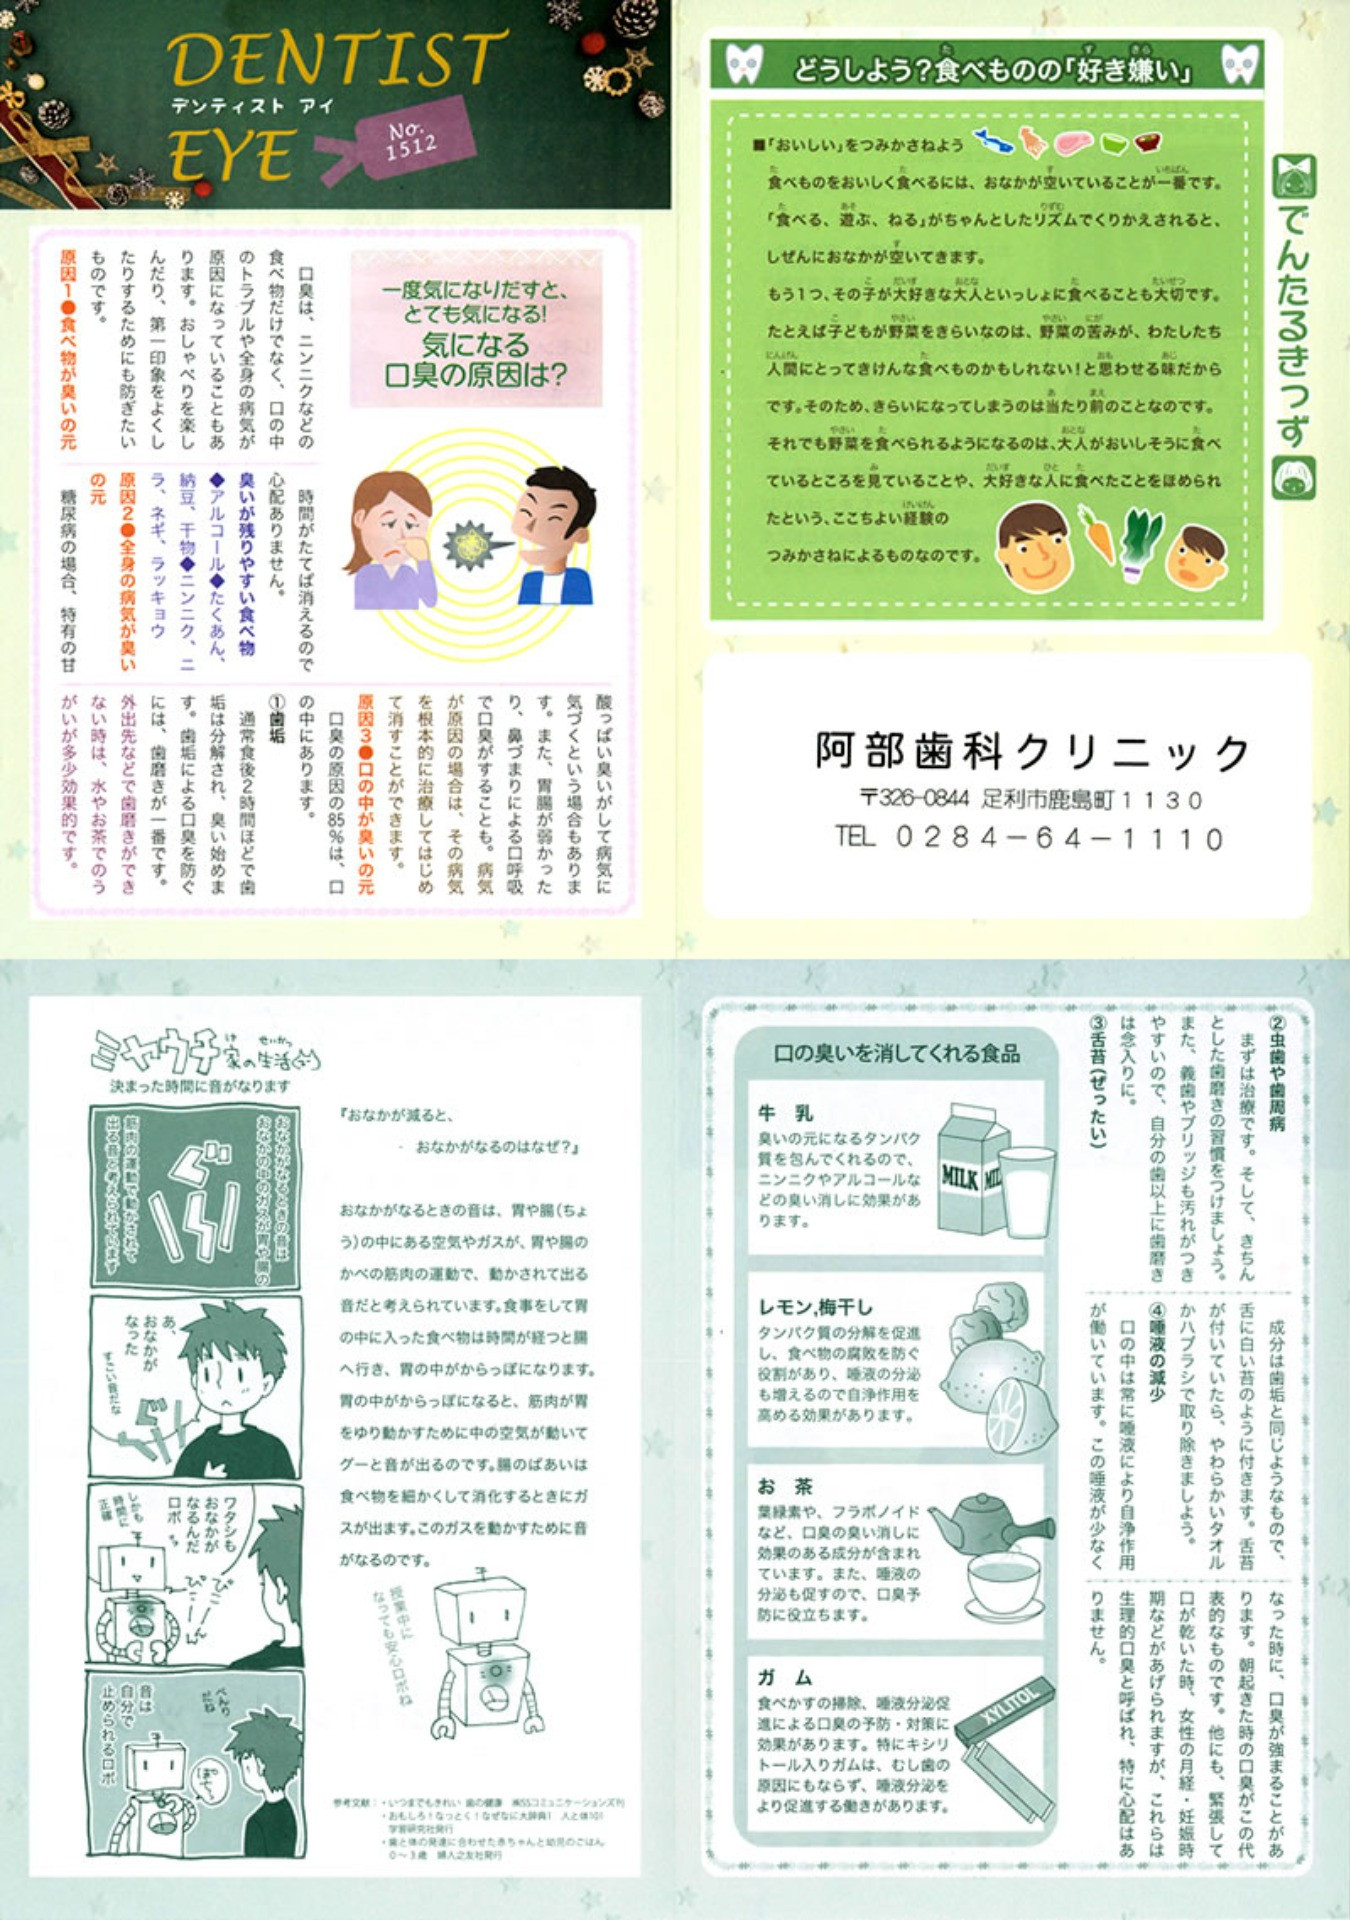 DENTIST EYE 2015年